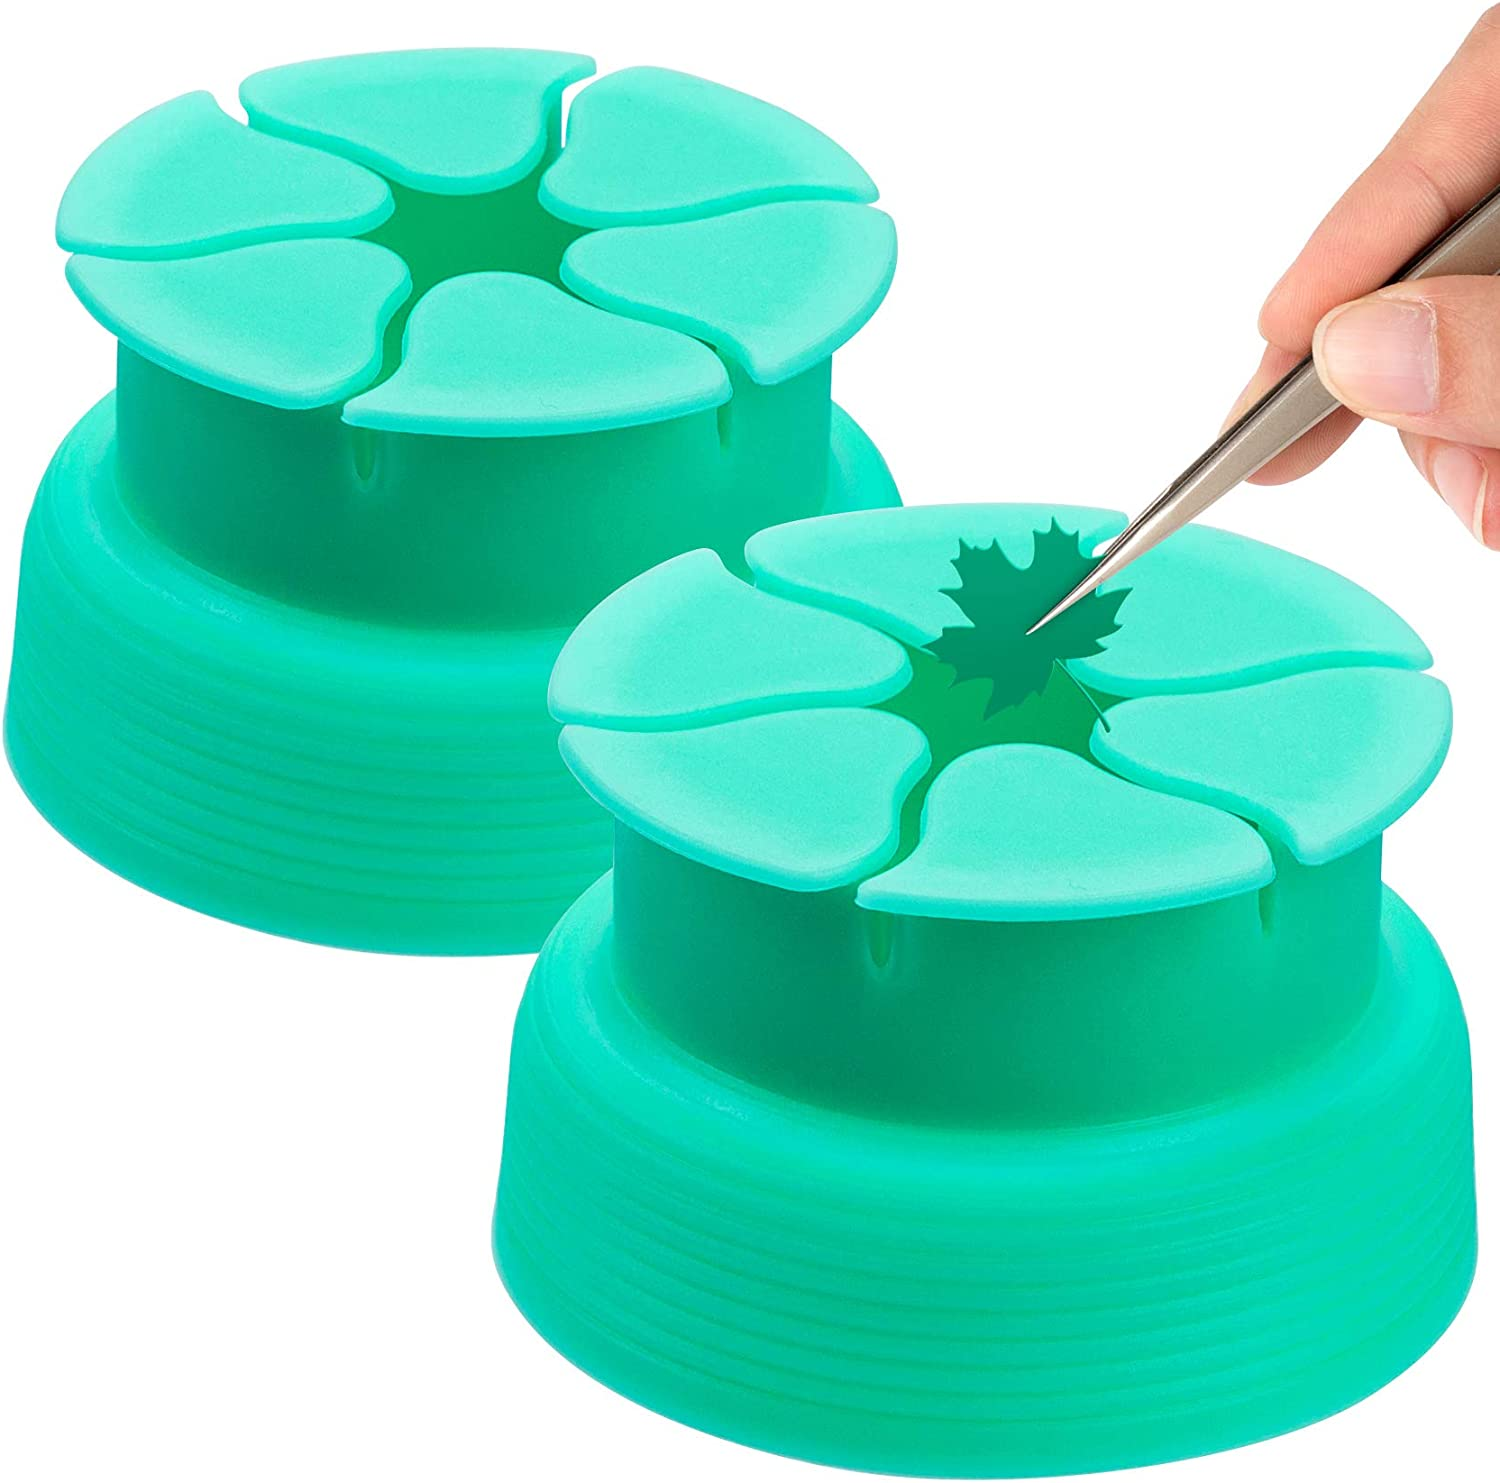 PAGOW 2PCS Vinyl Weeding Scrap Collector, Silicone Suction Cups for Heat Transfer Vinyl, HTV Craft Weeding Tools Holder Set Kit for Vinyls Weeder (Green)